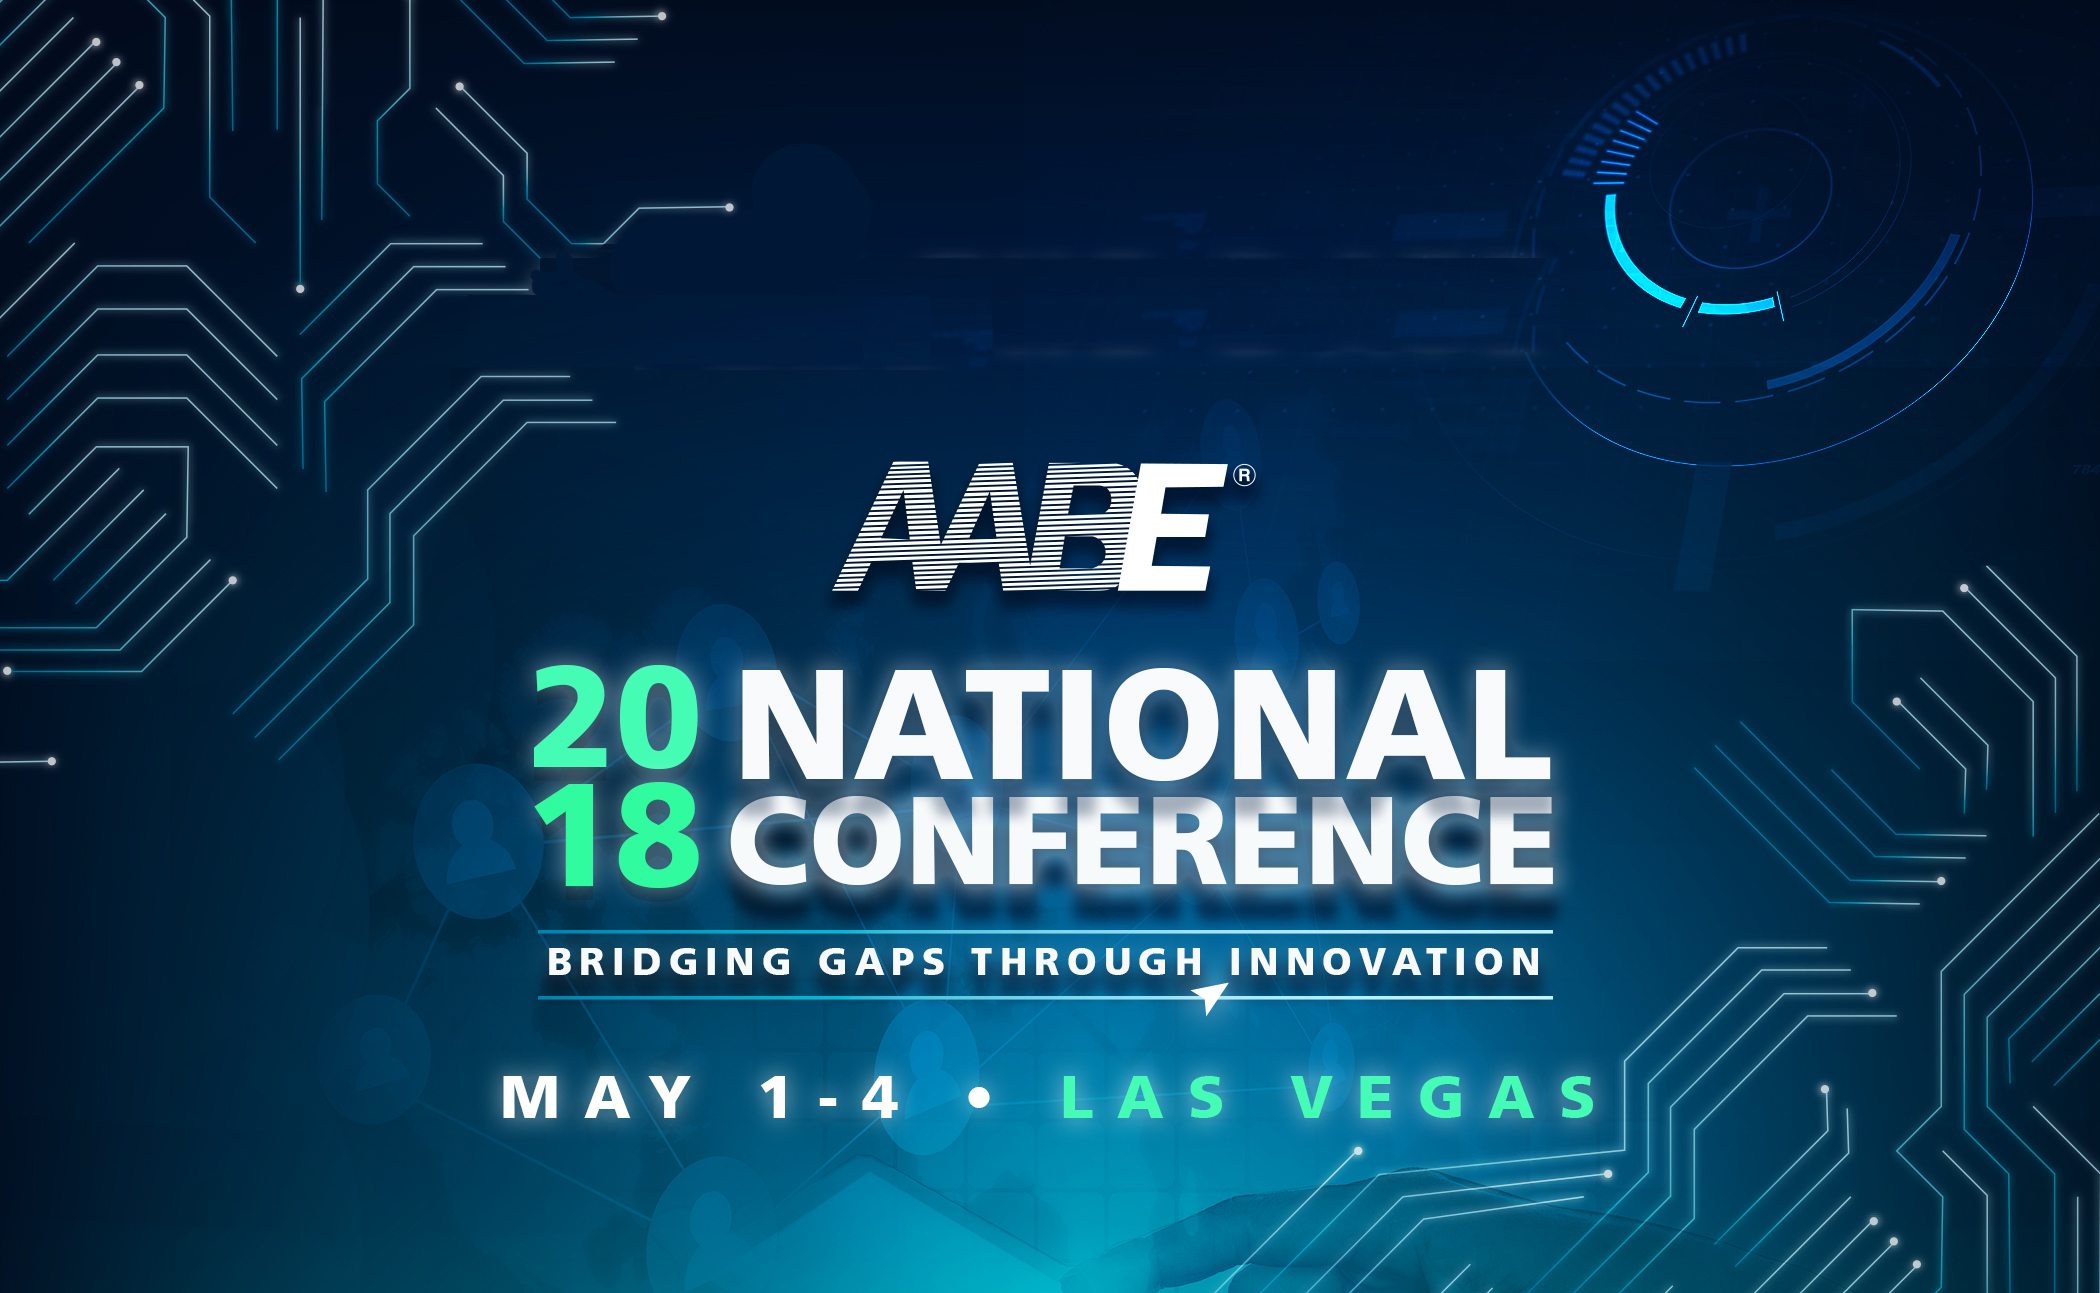 AABE 2018 National Conference